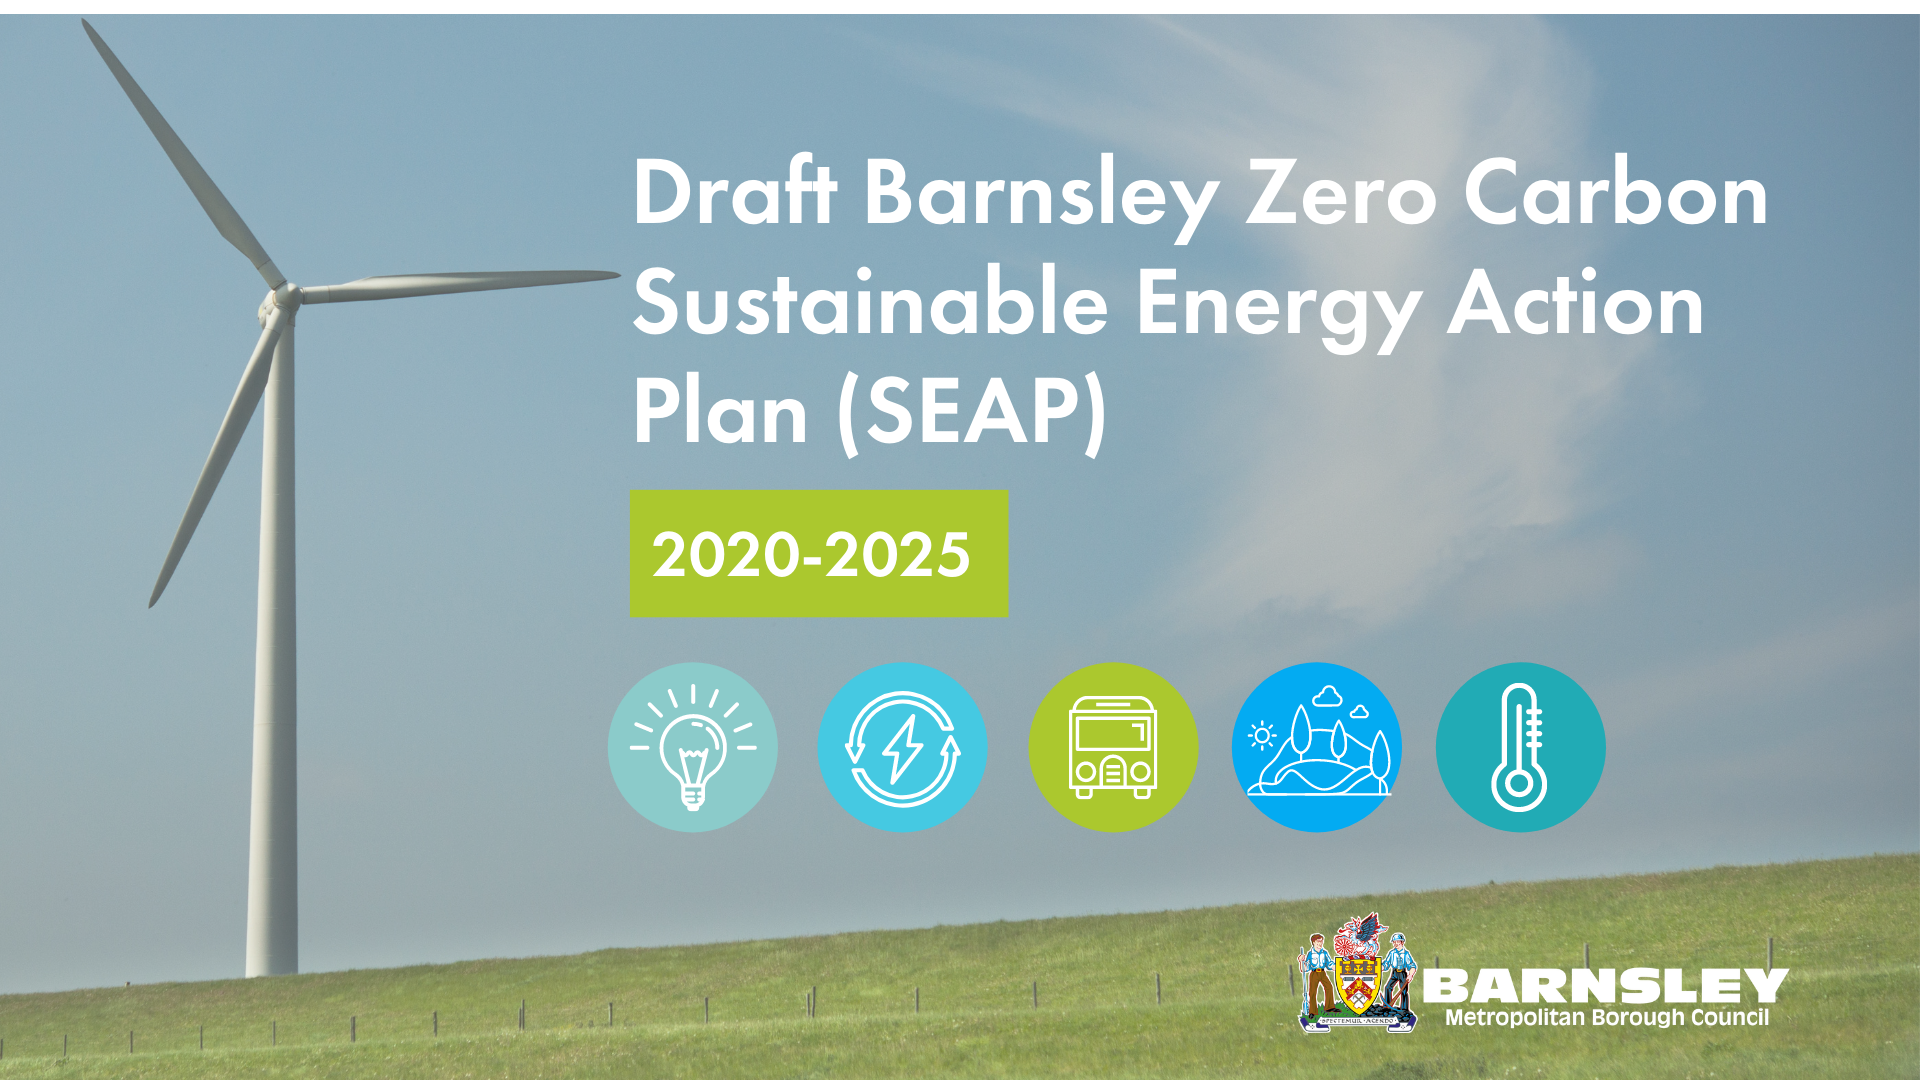 Draft Barnsley Zero Carbon Sustainable Energy Action Plan (SEAP) 2020-2025